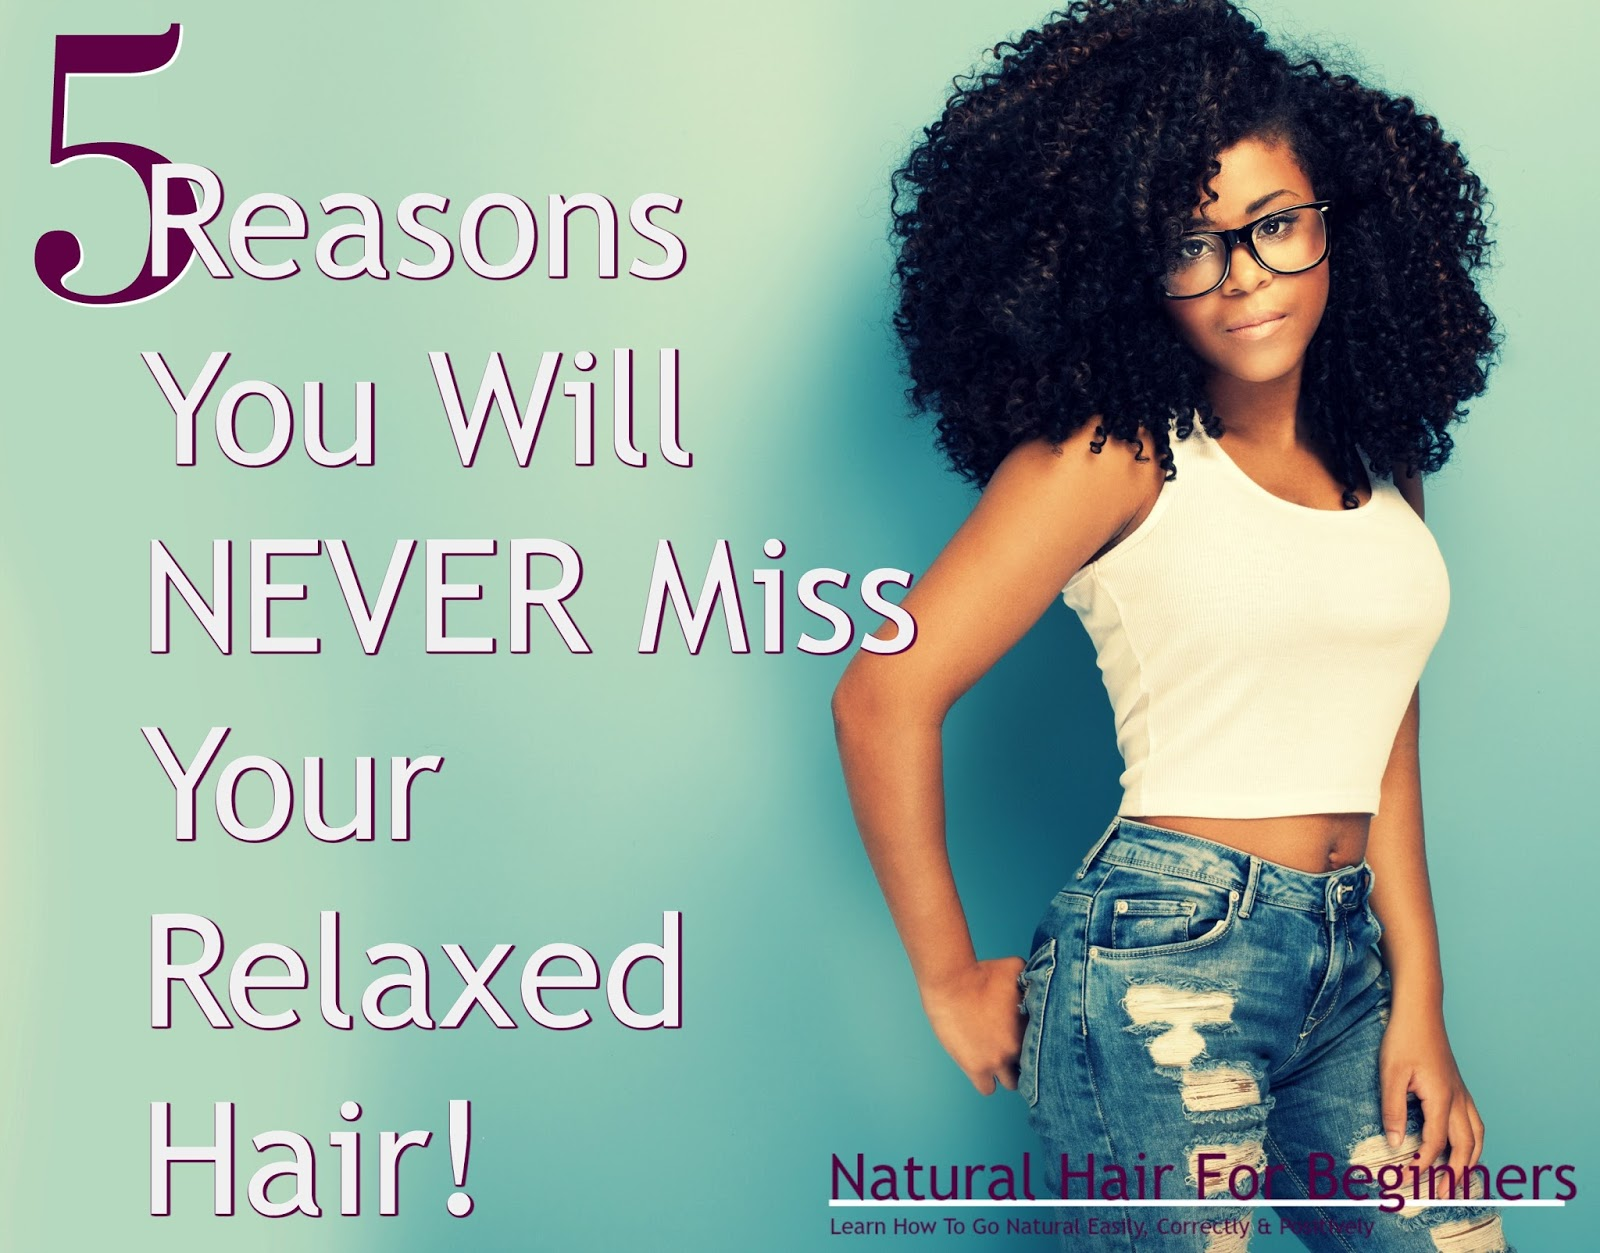 Relaxed hair won't be missed when you go natural! Check out our top reasons why your natural hair will thrive and you have every reason to be happy.